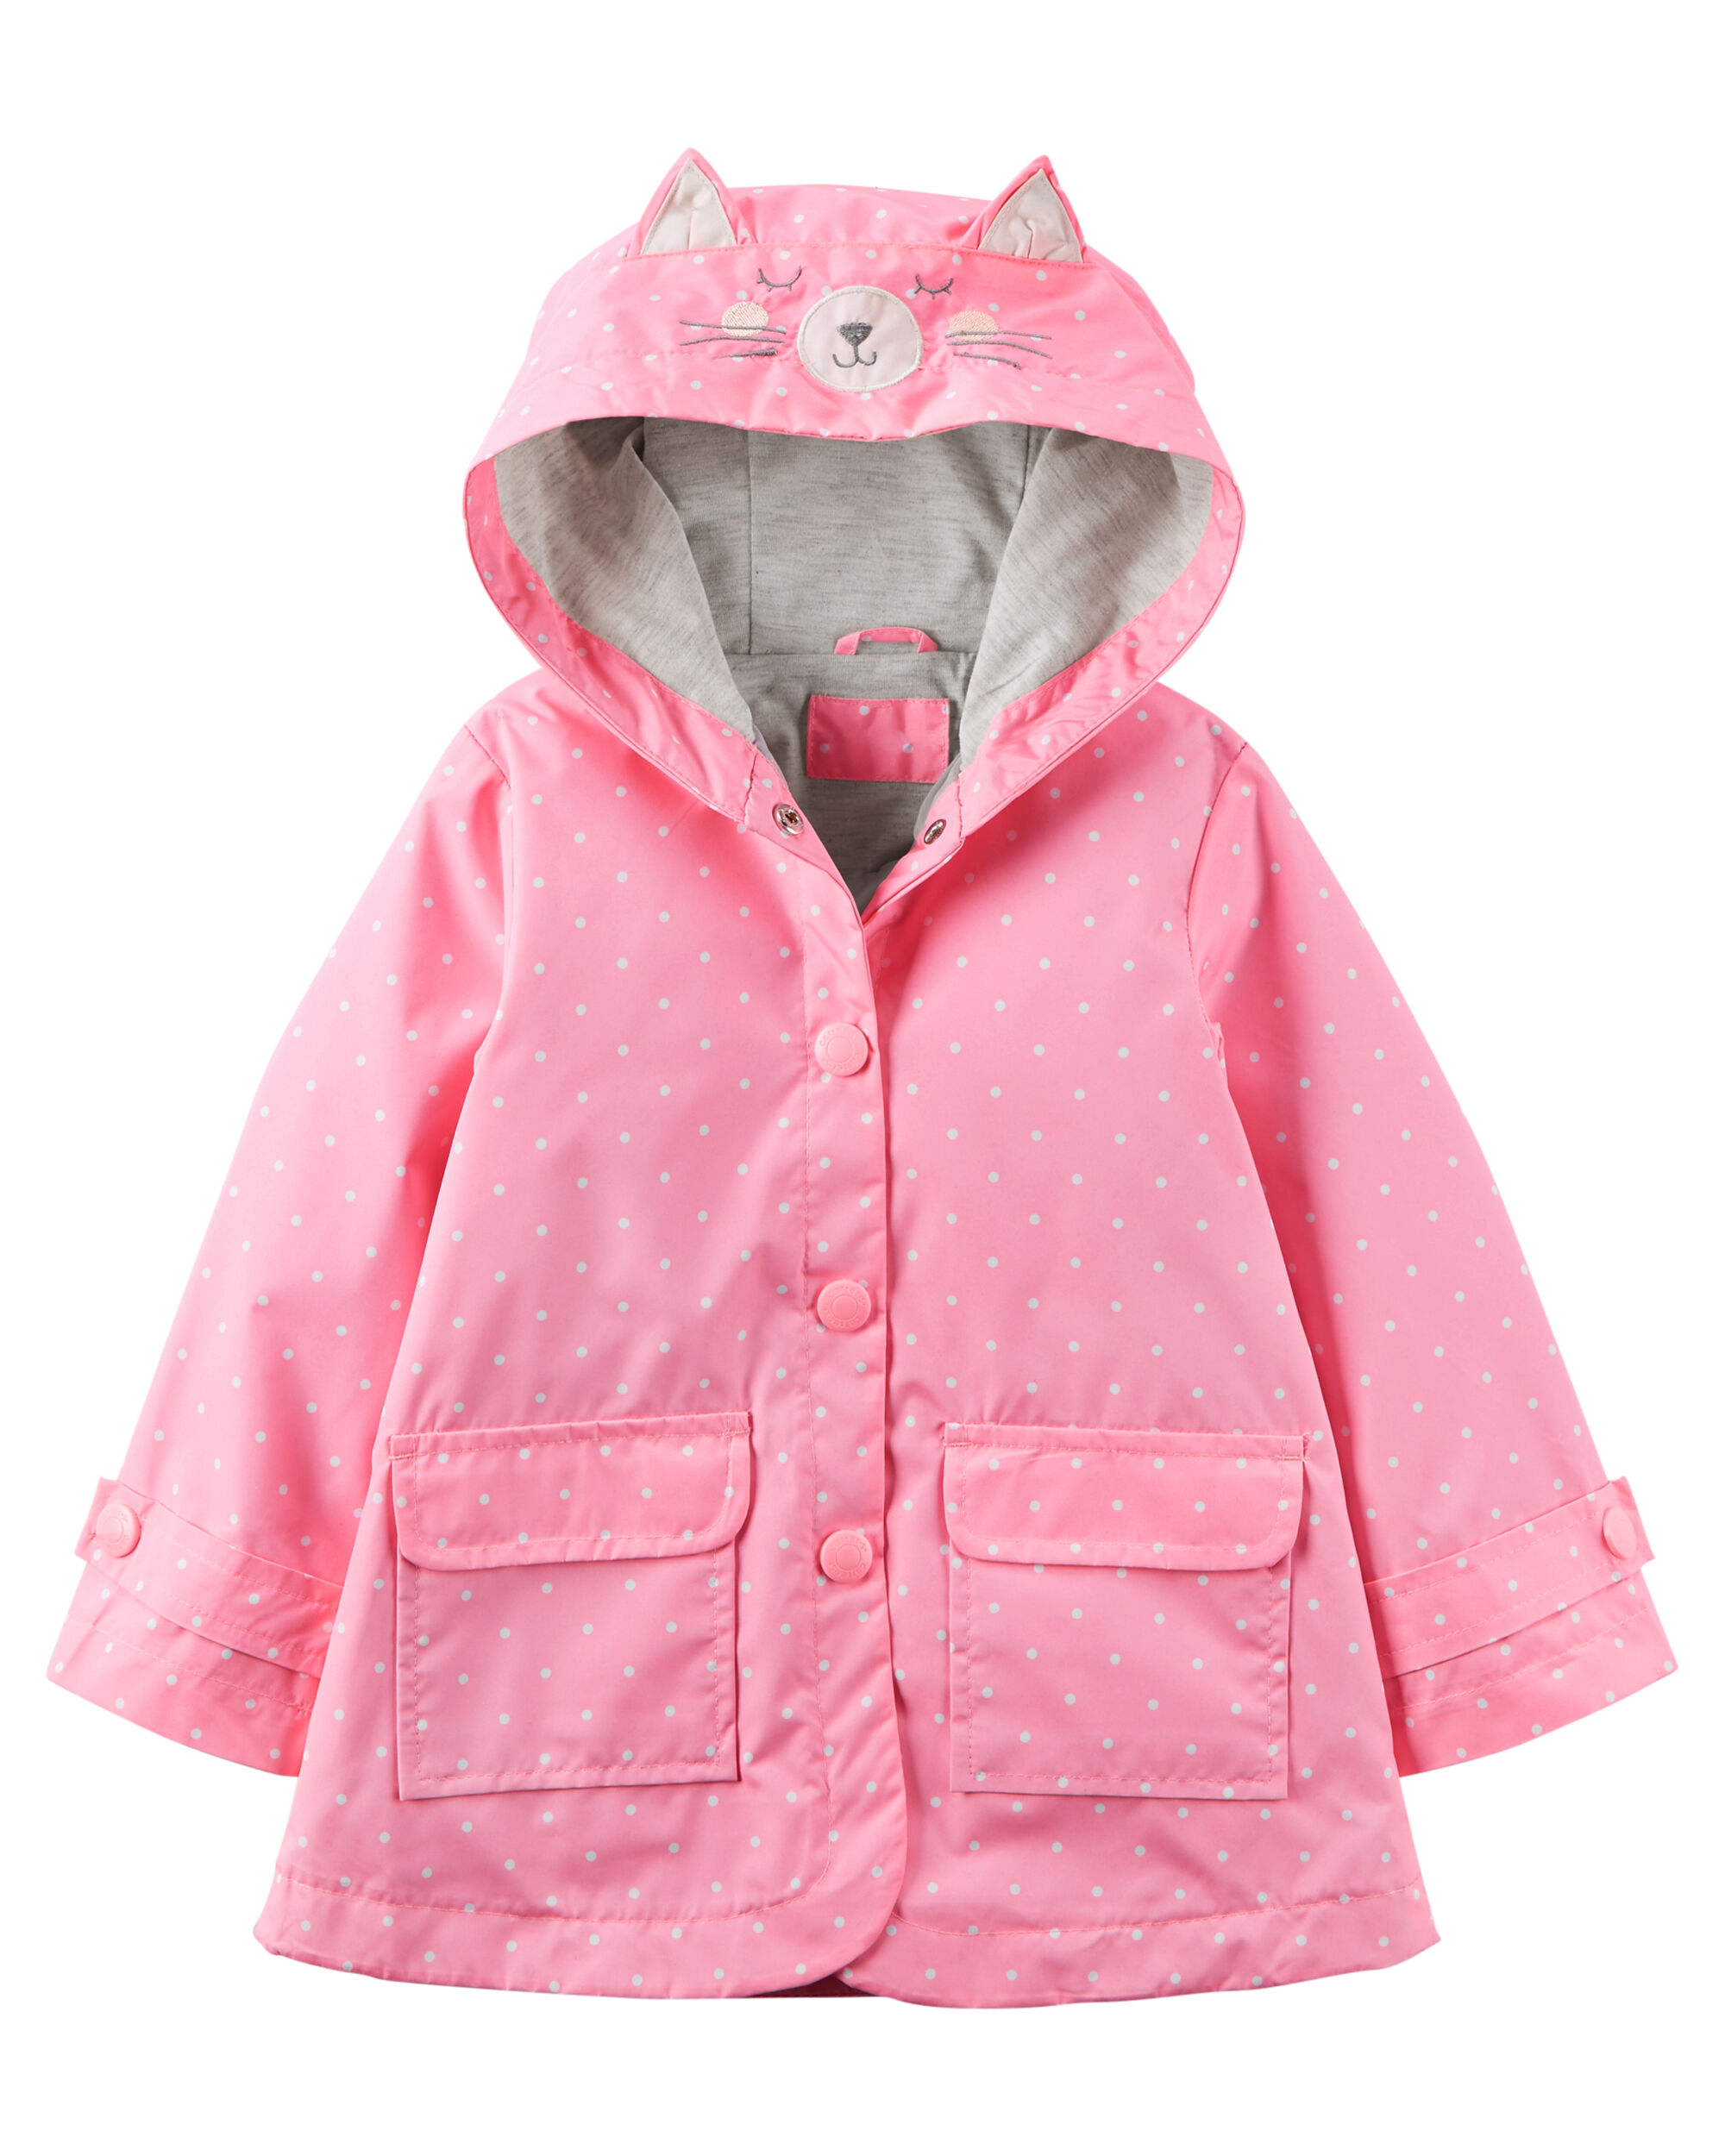 Baby Headquarters Toddler / Infant / Baby Girl Hooded Raincoat - white with silver color hearts and pink buttons - thick fleece lining inside - Size 18 Months - 18Mi. Gymboree Baby Girls Rain Coat M Teal Polka Dot Waterproof Jacket Slicker. $ Buy It Now.